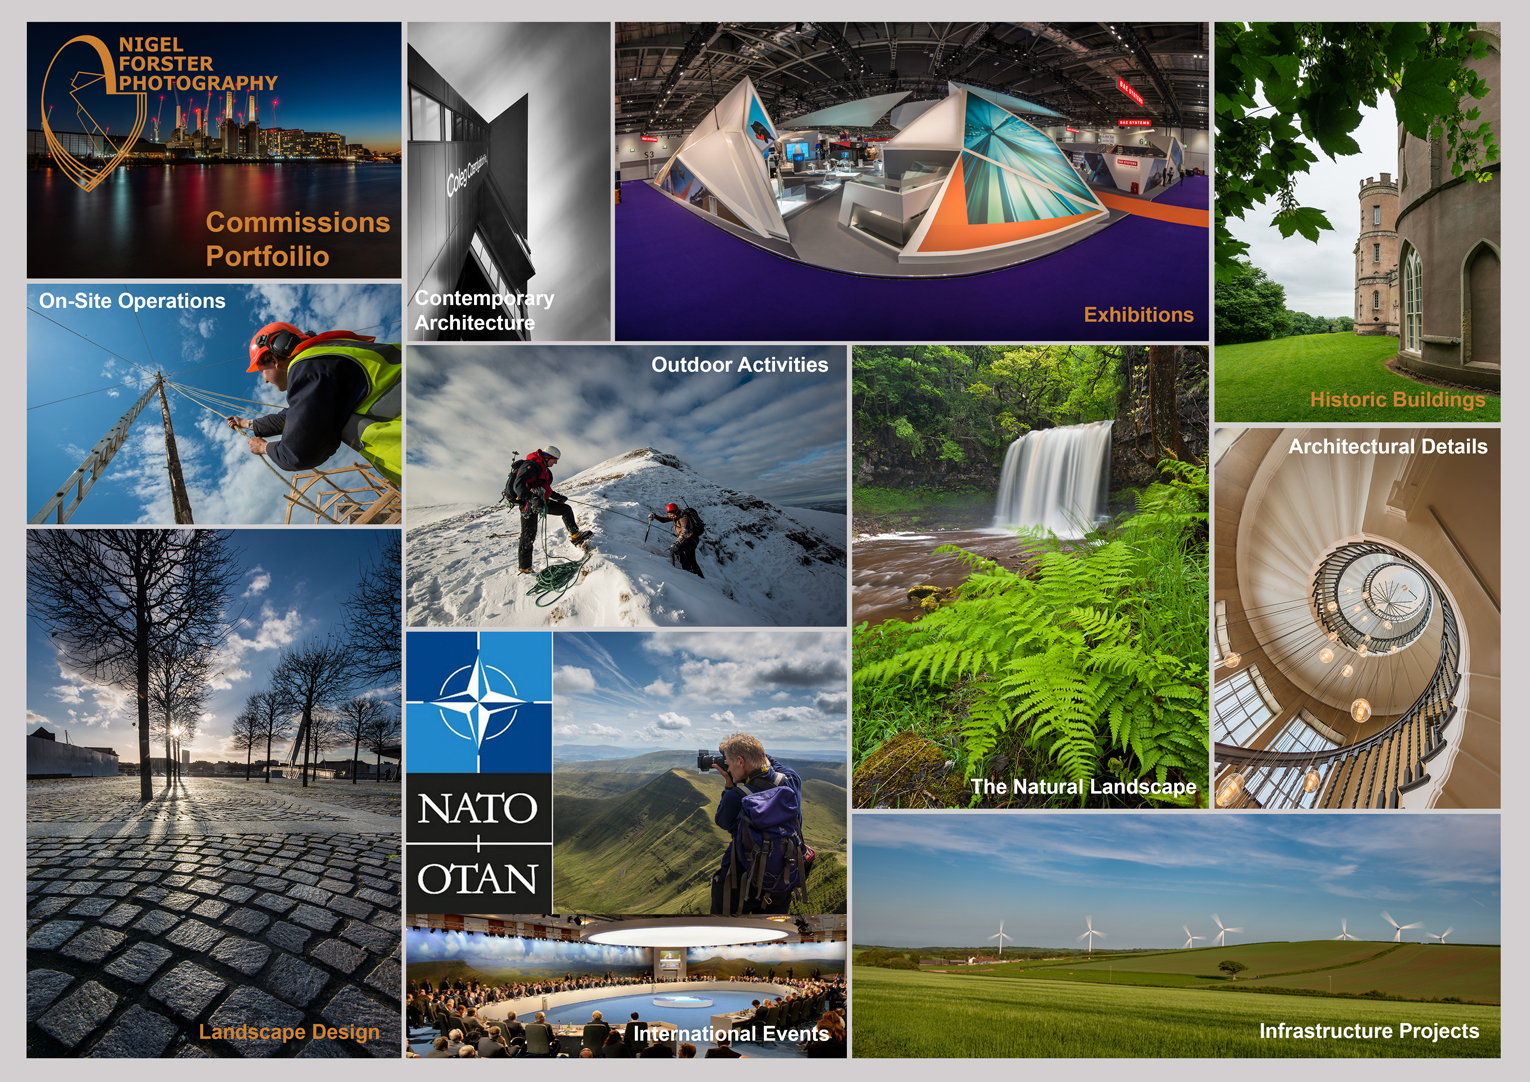 Nigel Forster Photography Commissions Cover Sheet